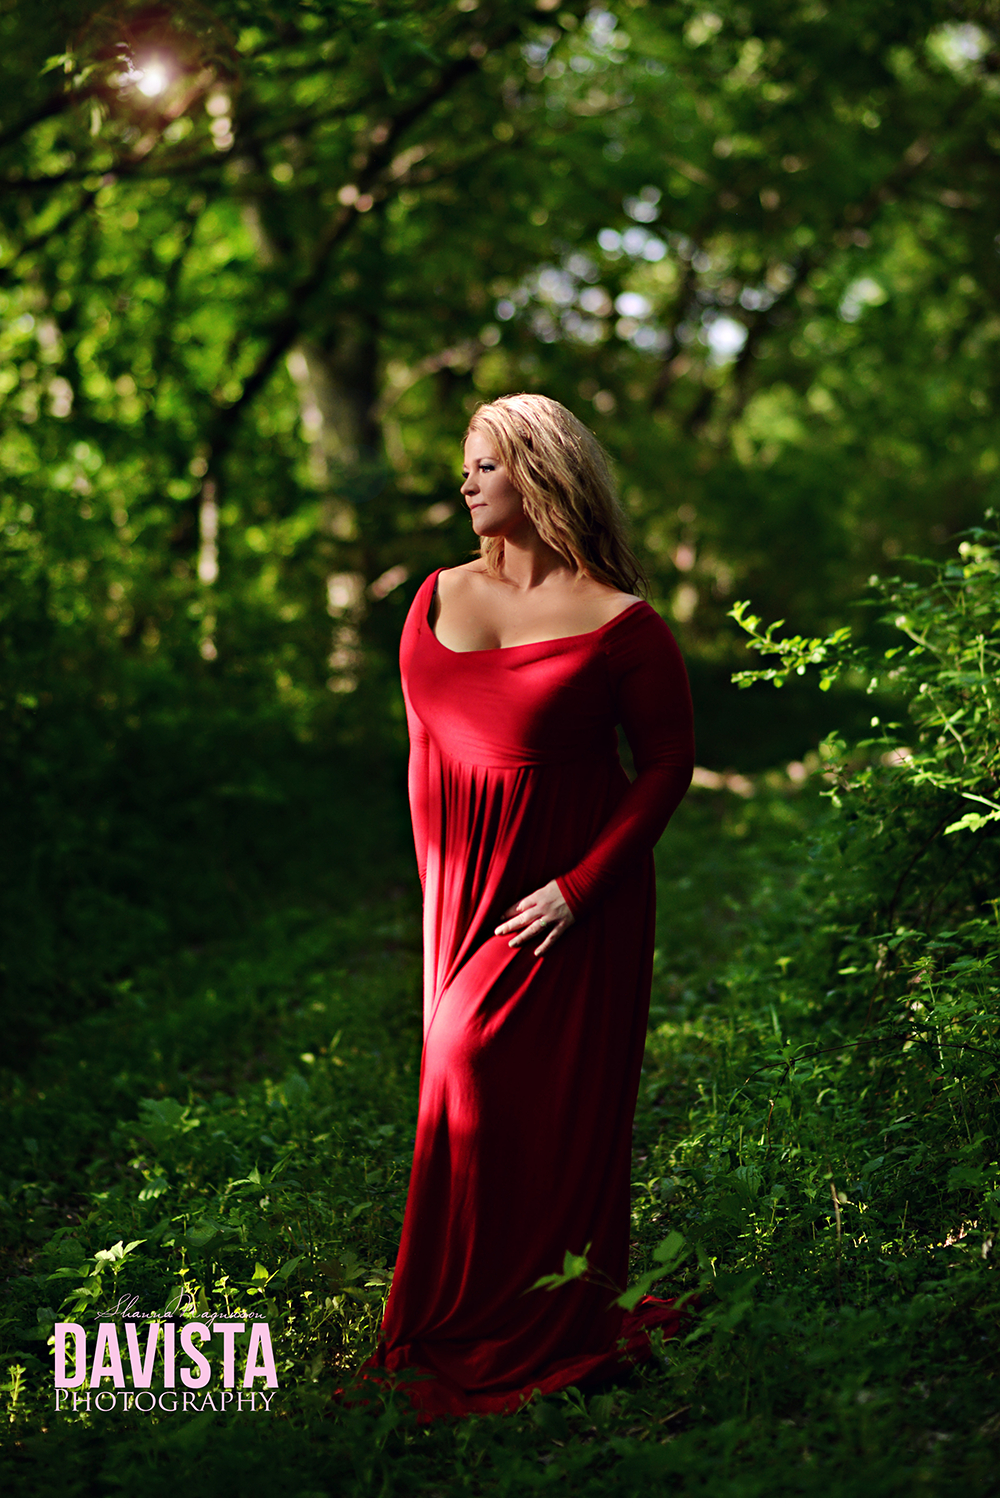 gorgeous red dress women portraits poses